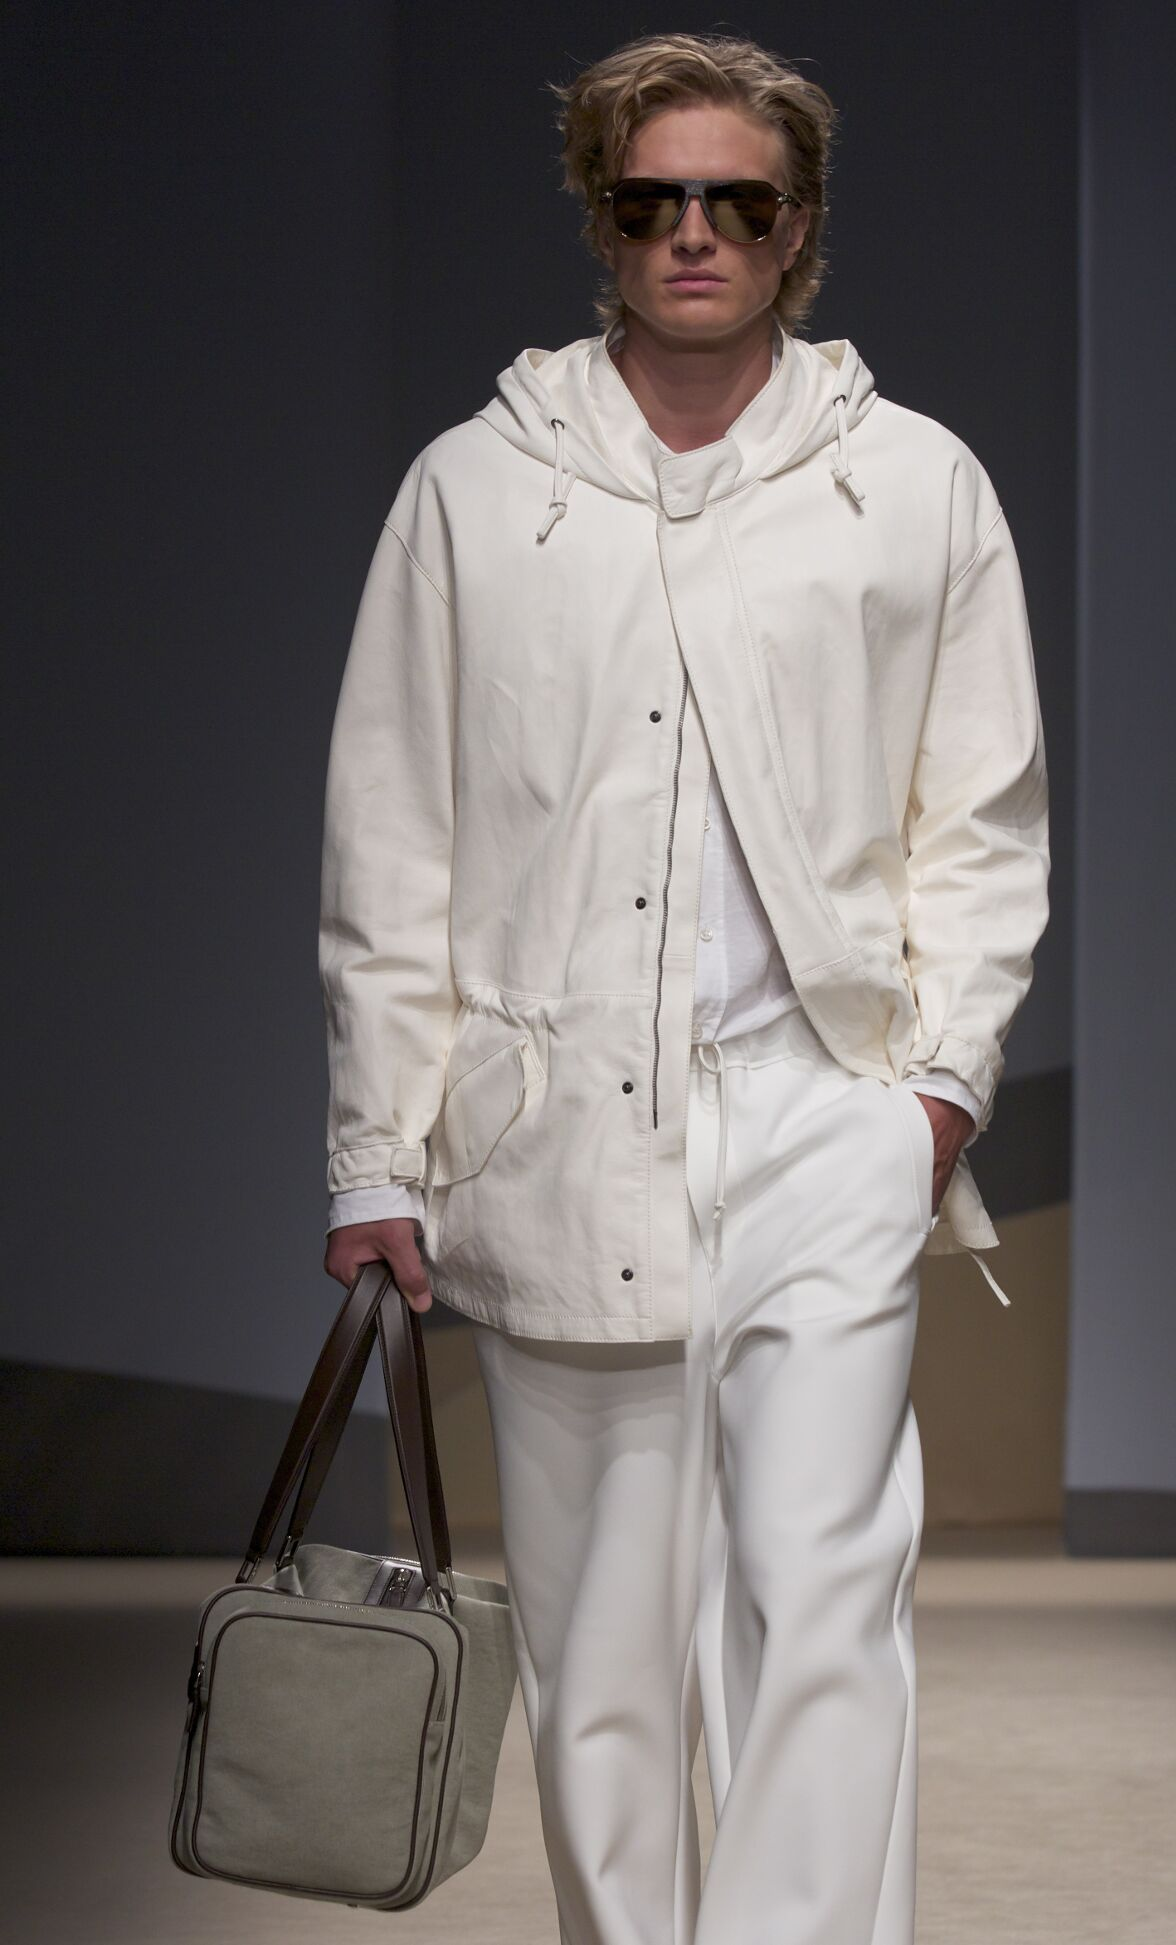 Trussardi Men's Collection 2014